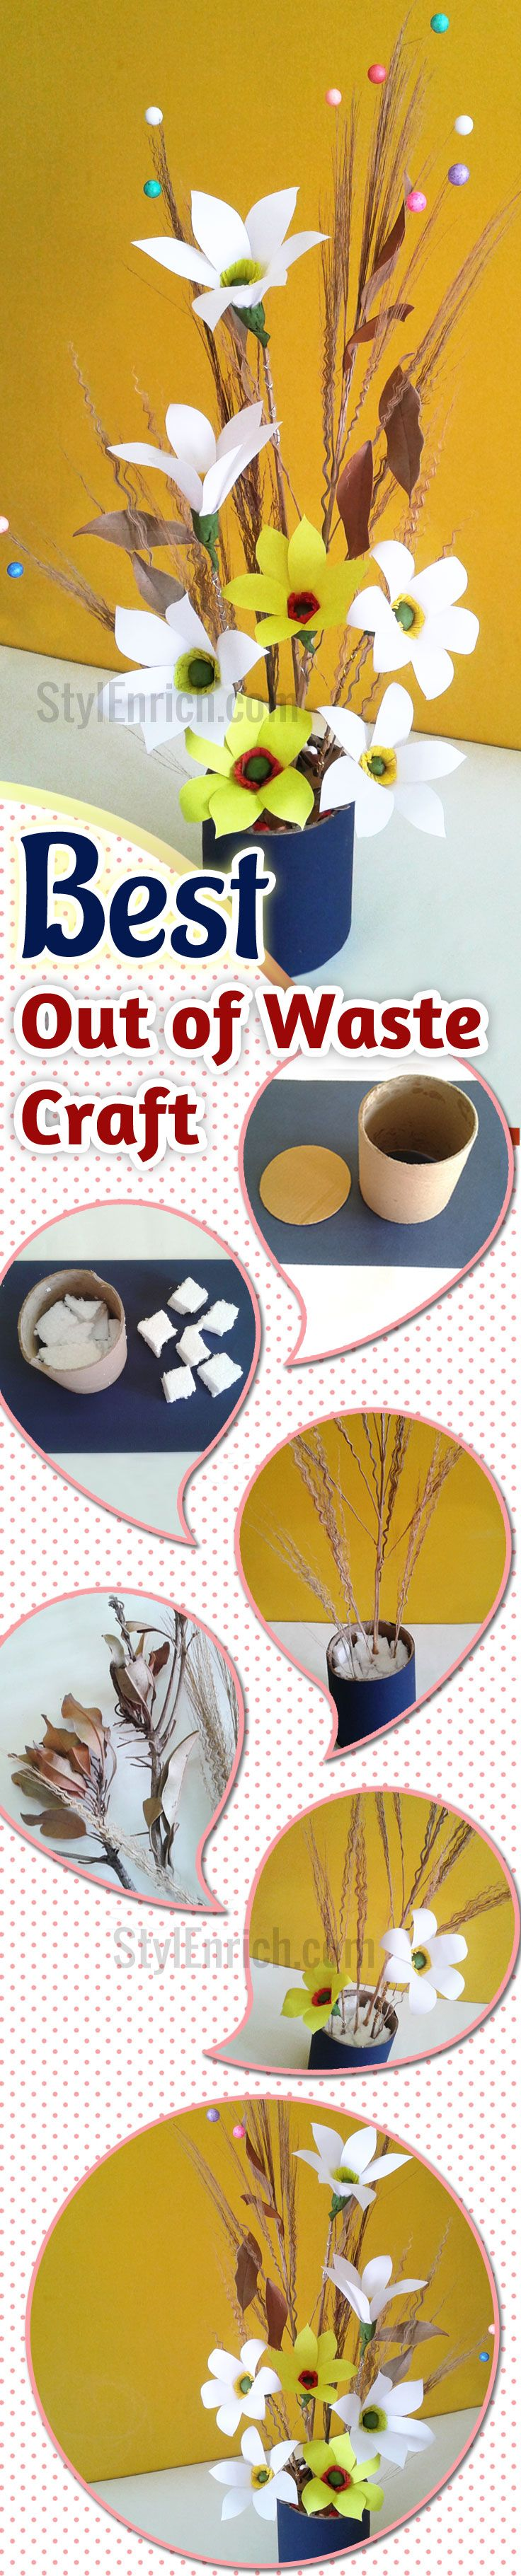 49 best images about best out of waste on pinterest for Best out of waste things